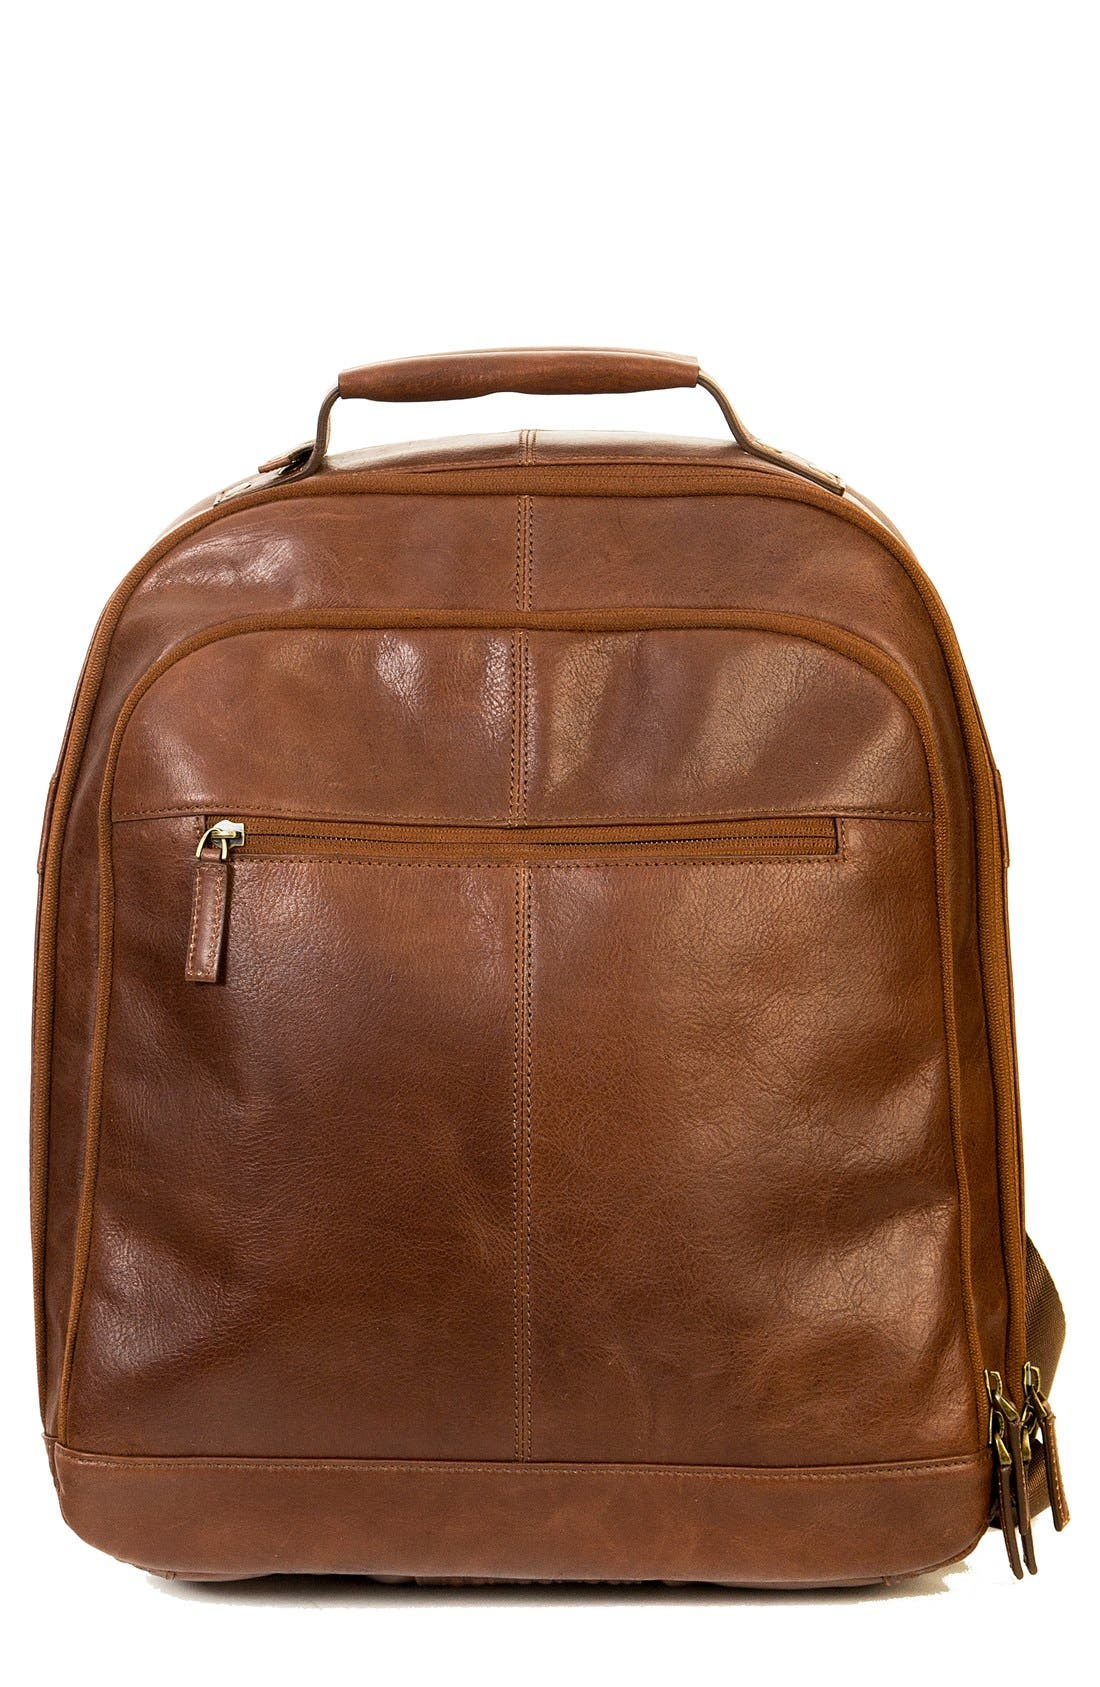 Boconi 'Becker' Leather Backpack